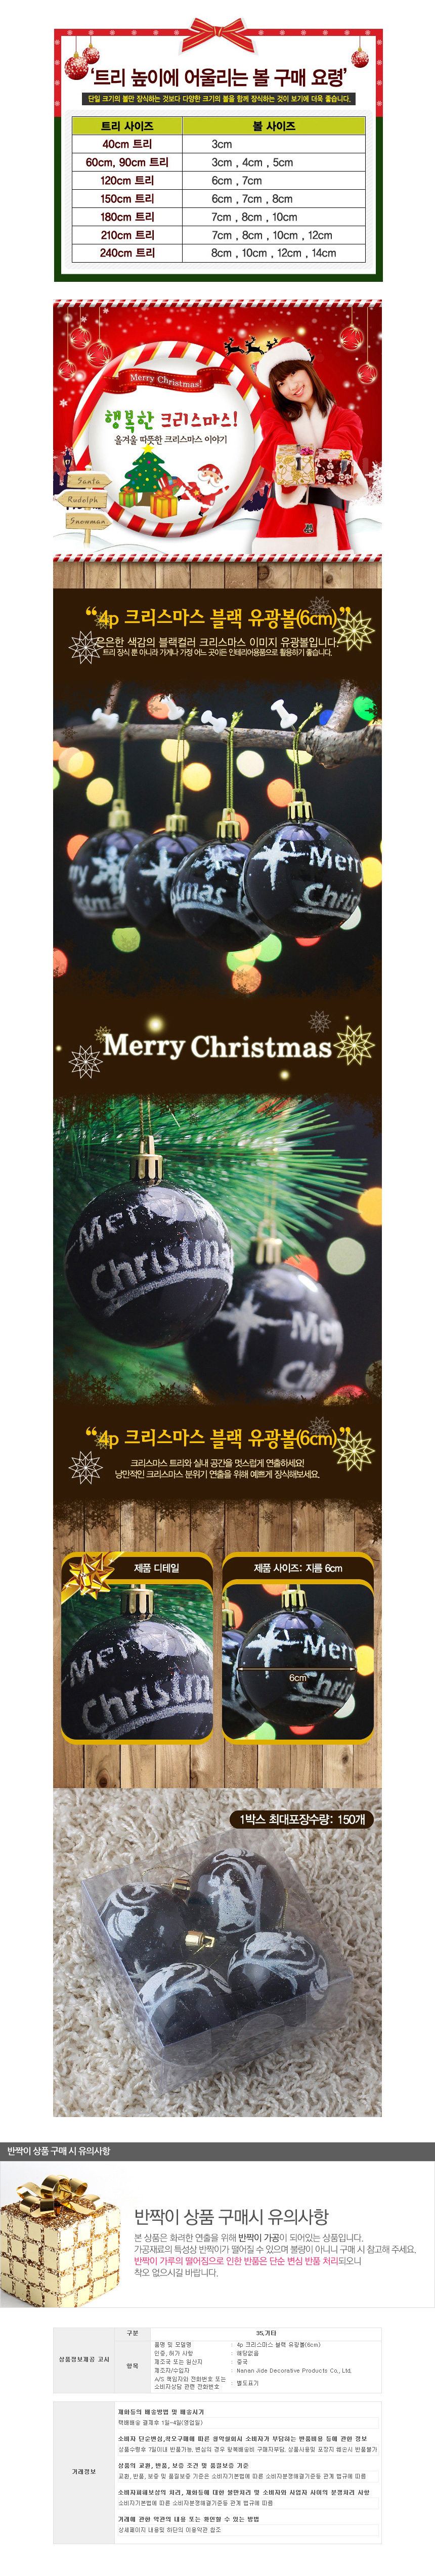 [ WINEQOK ] Christmas Goods / Christmas Black Glossy Ball 1p